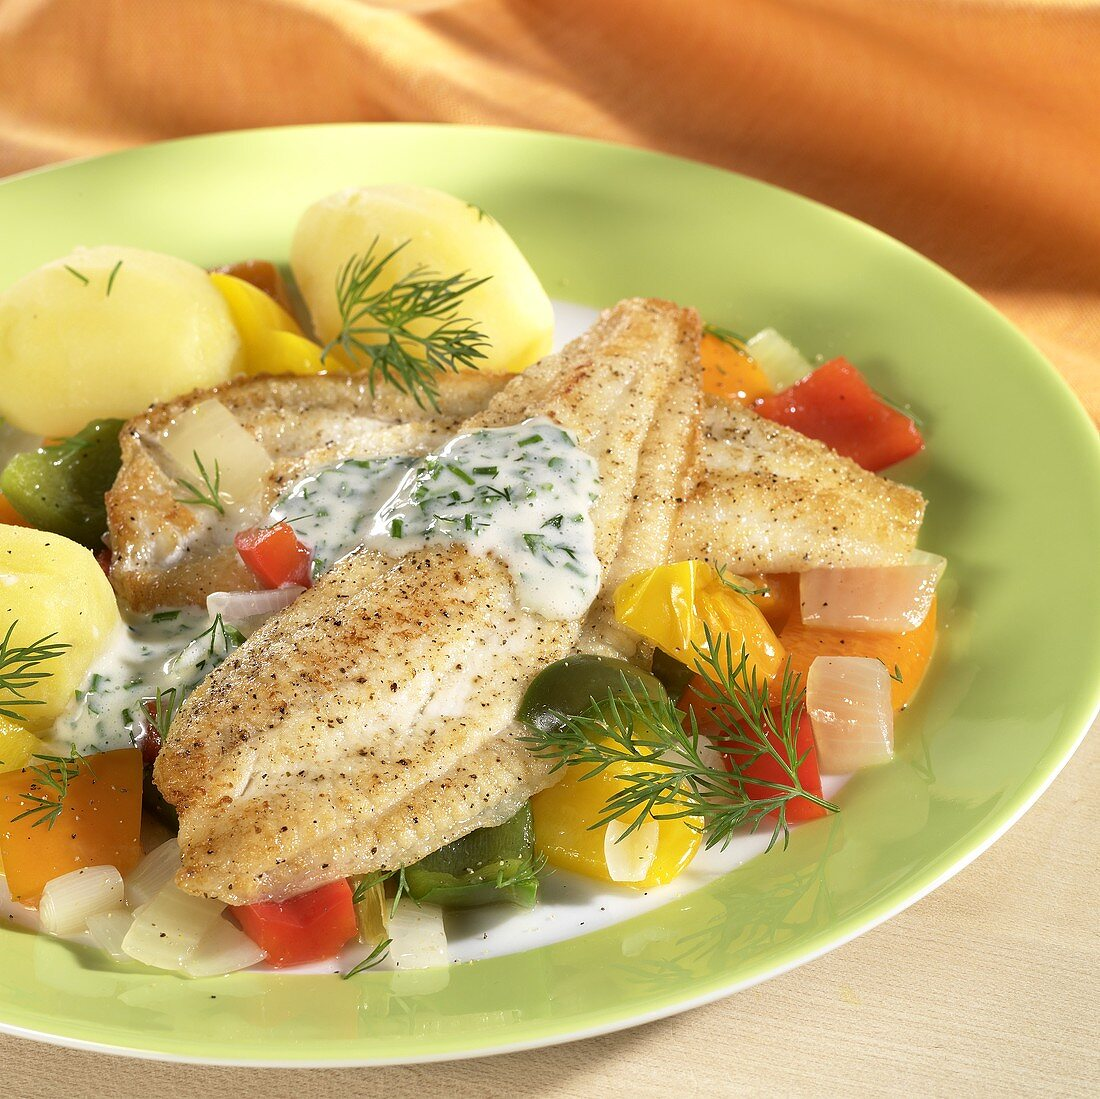 Plaice fillet with boiled potatoes & dill on vegetables